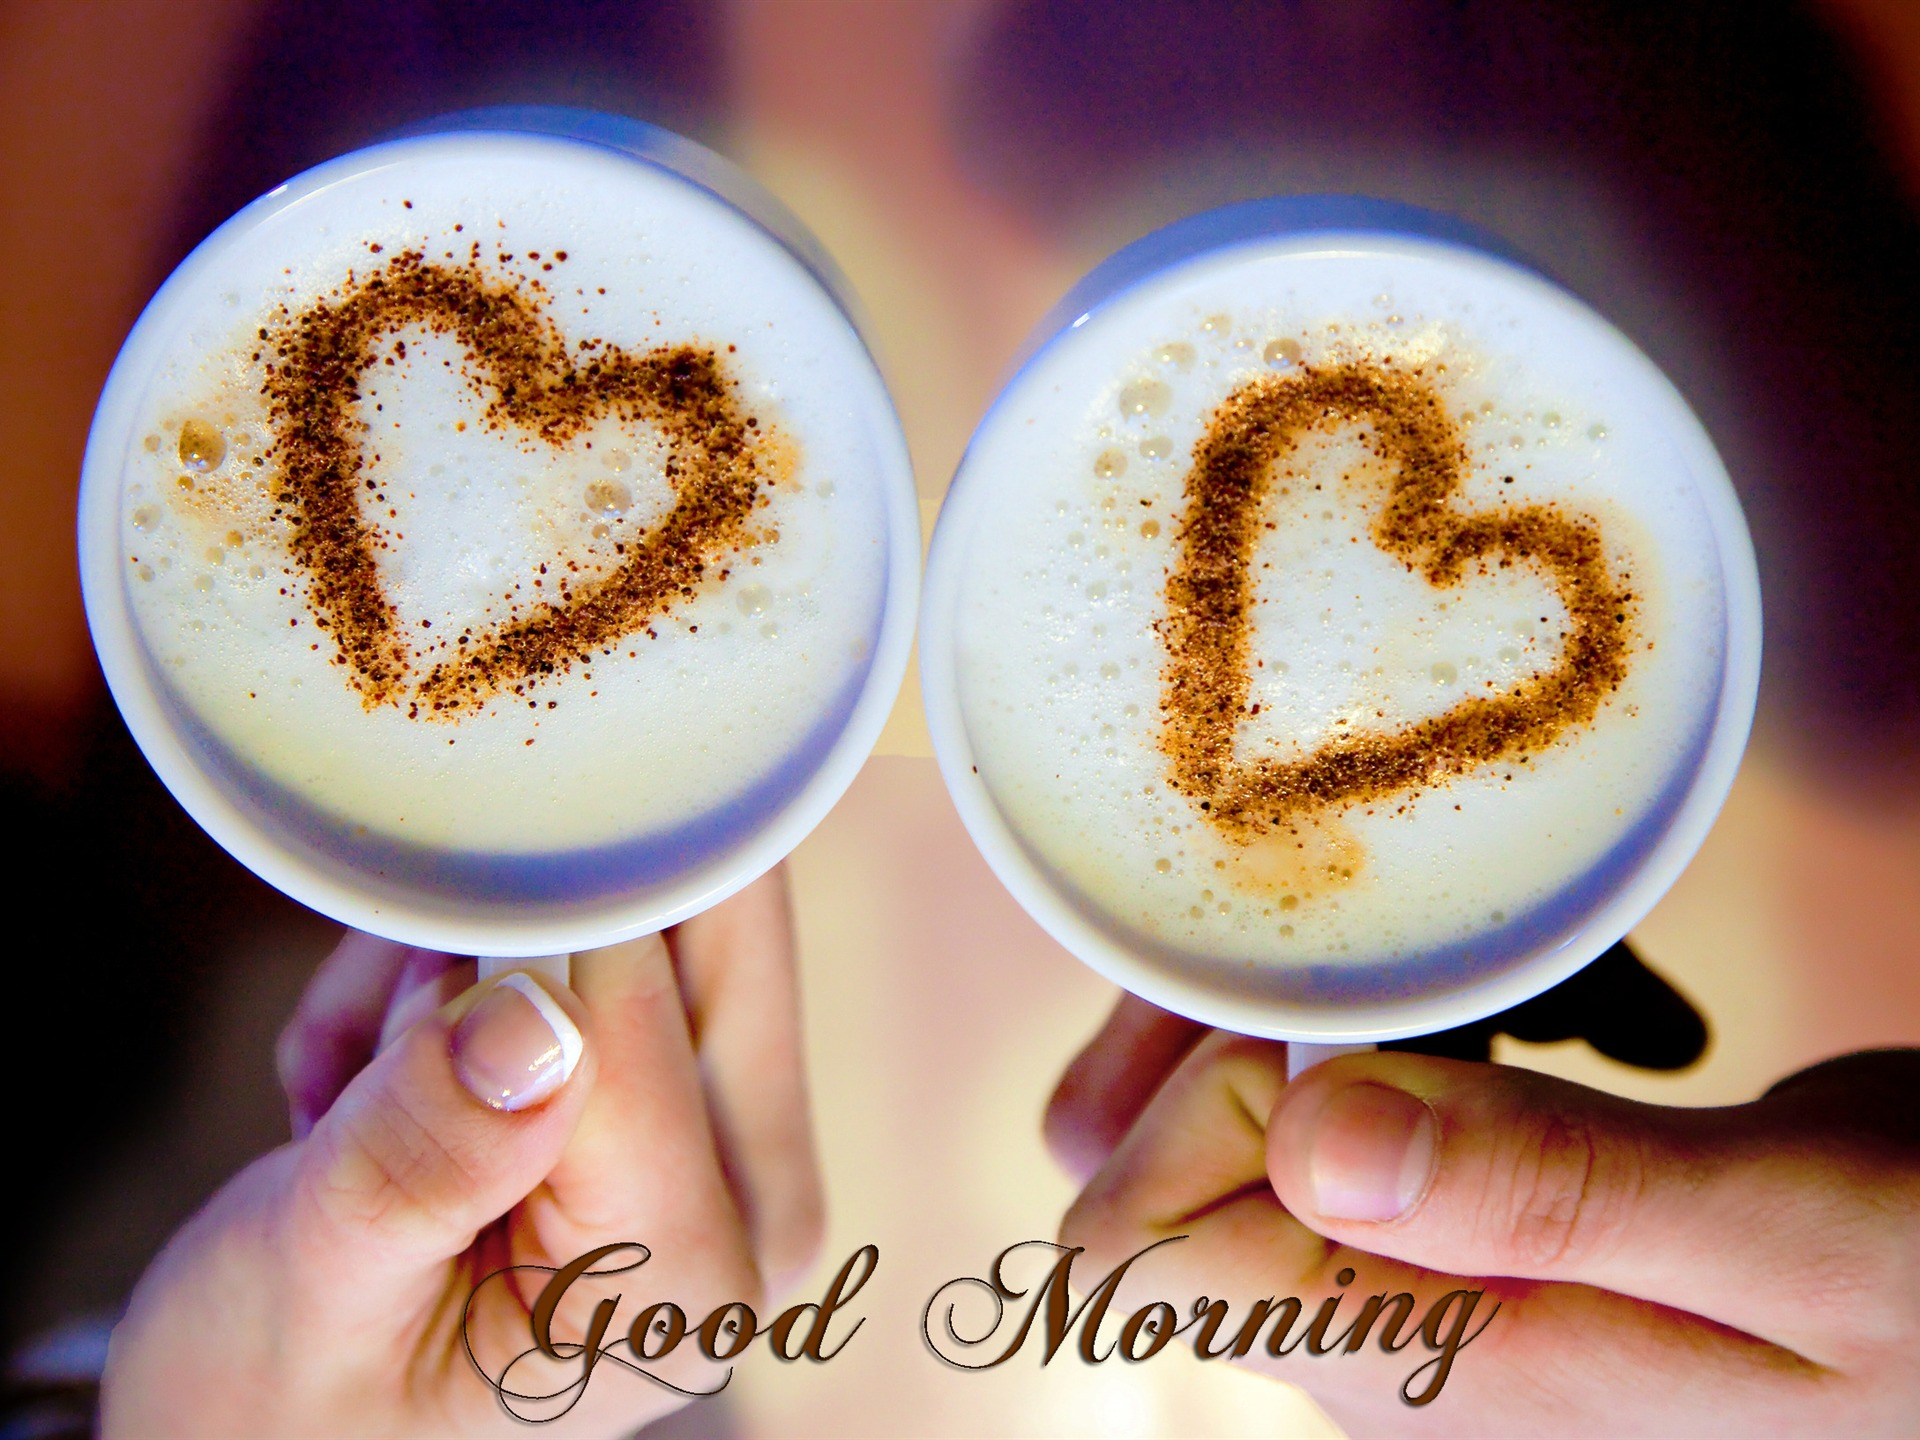 Good Morning Love Coffee Art HD Wallpaper 1920x1440